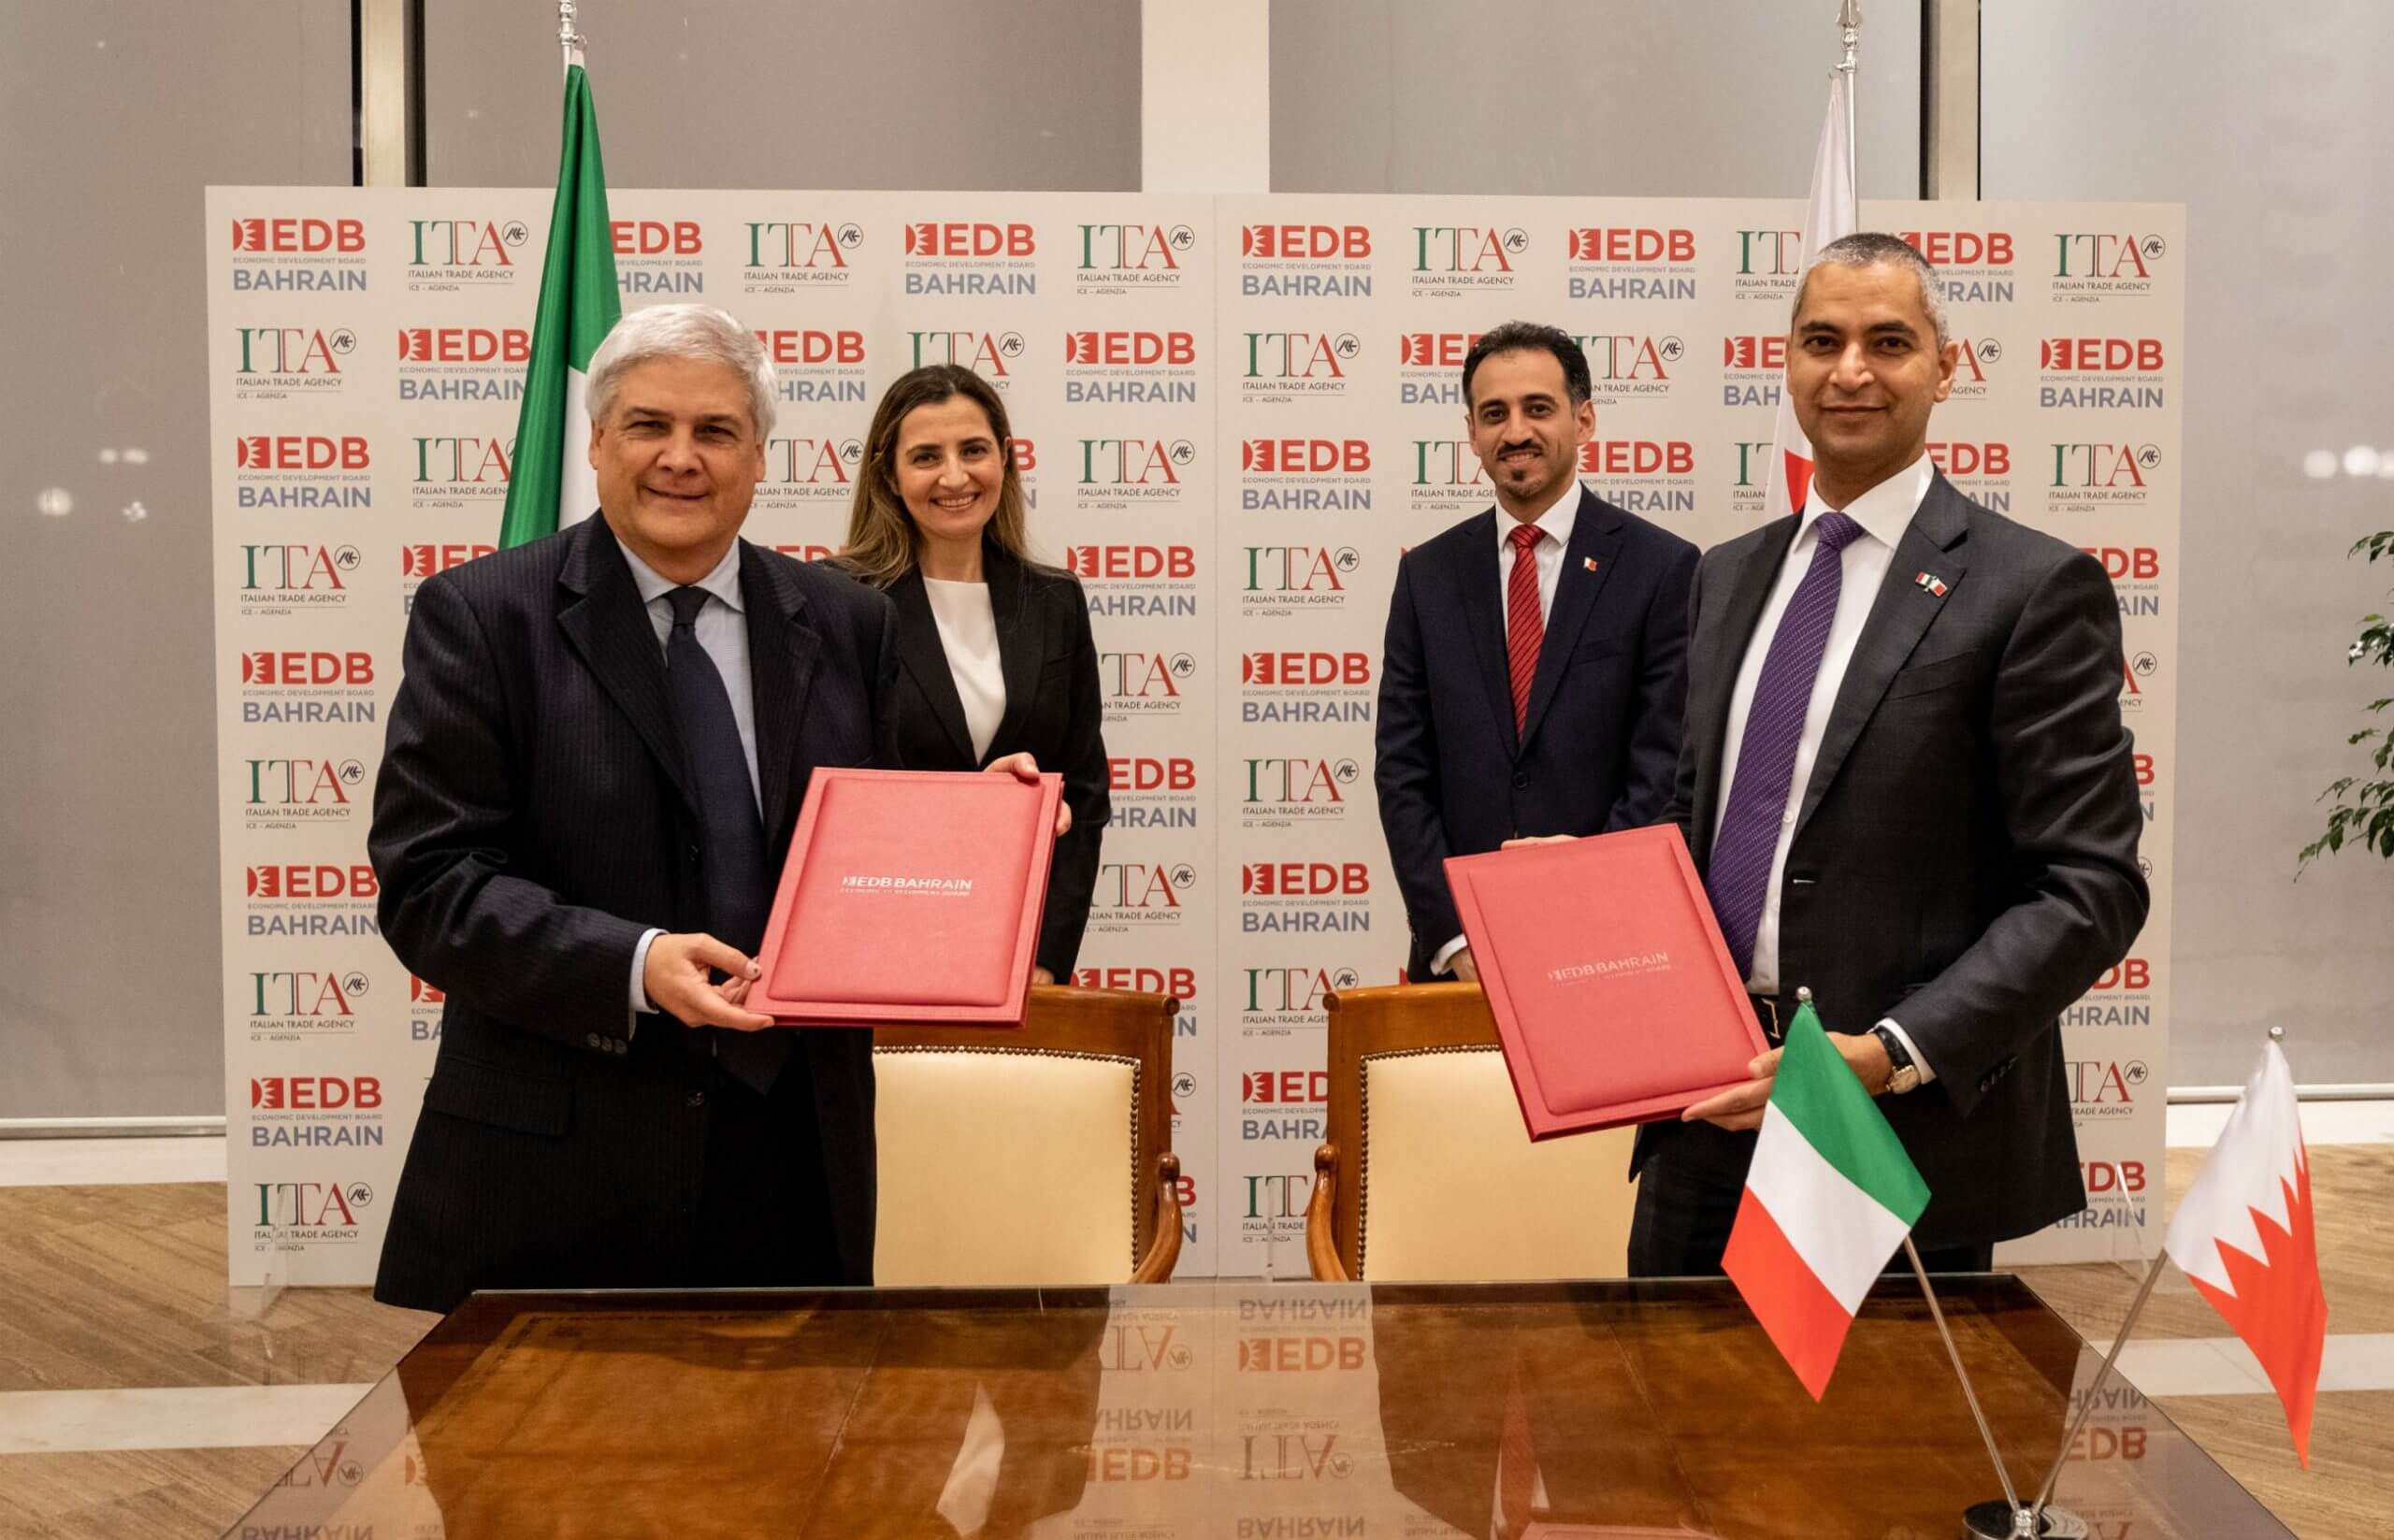 The Italian Trade Agency (ICE) to open an office in Bahrain